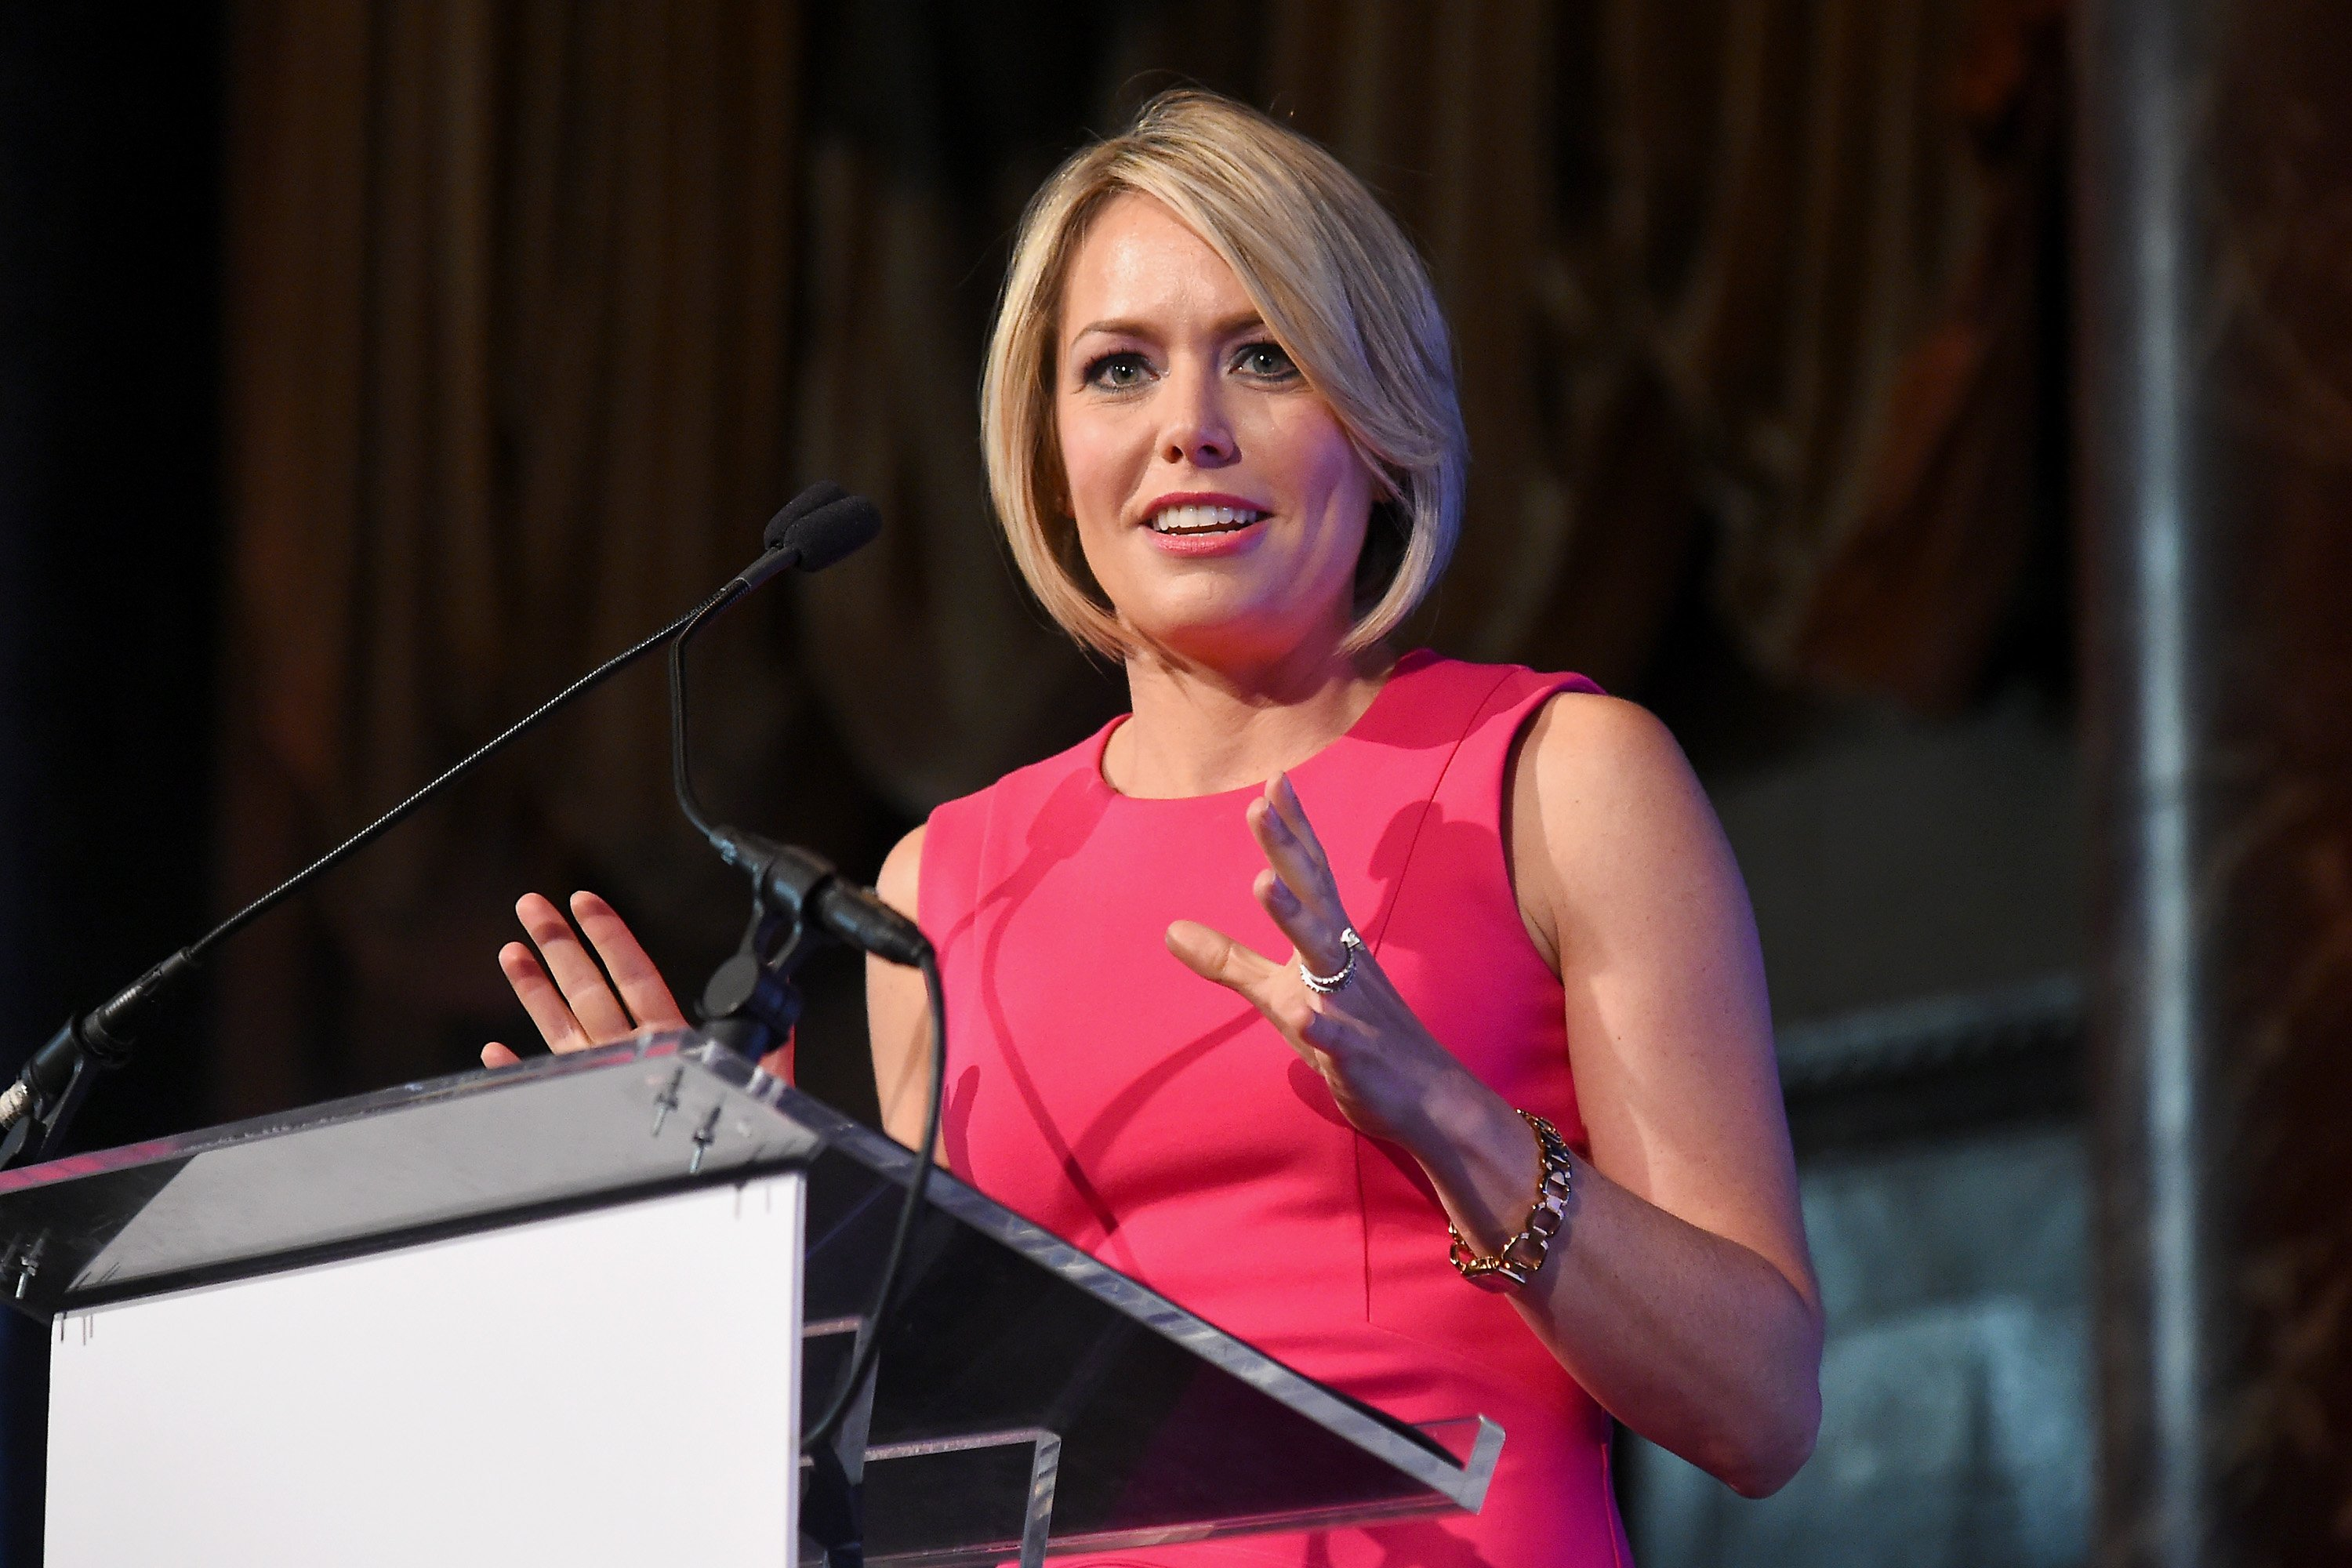 Meteorologist Dylan Dreyer during a 2017 luncheon event in New York City. | Photo: Getty Images